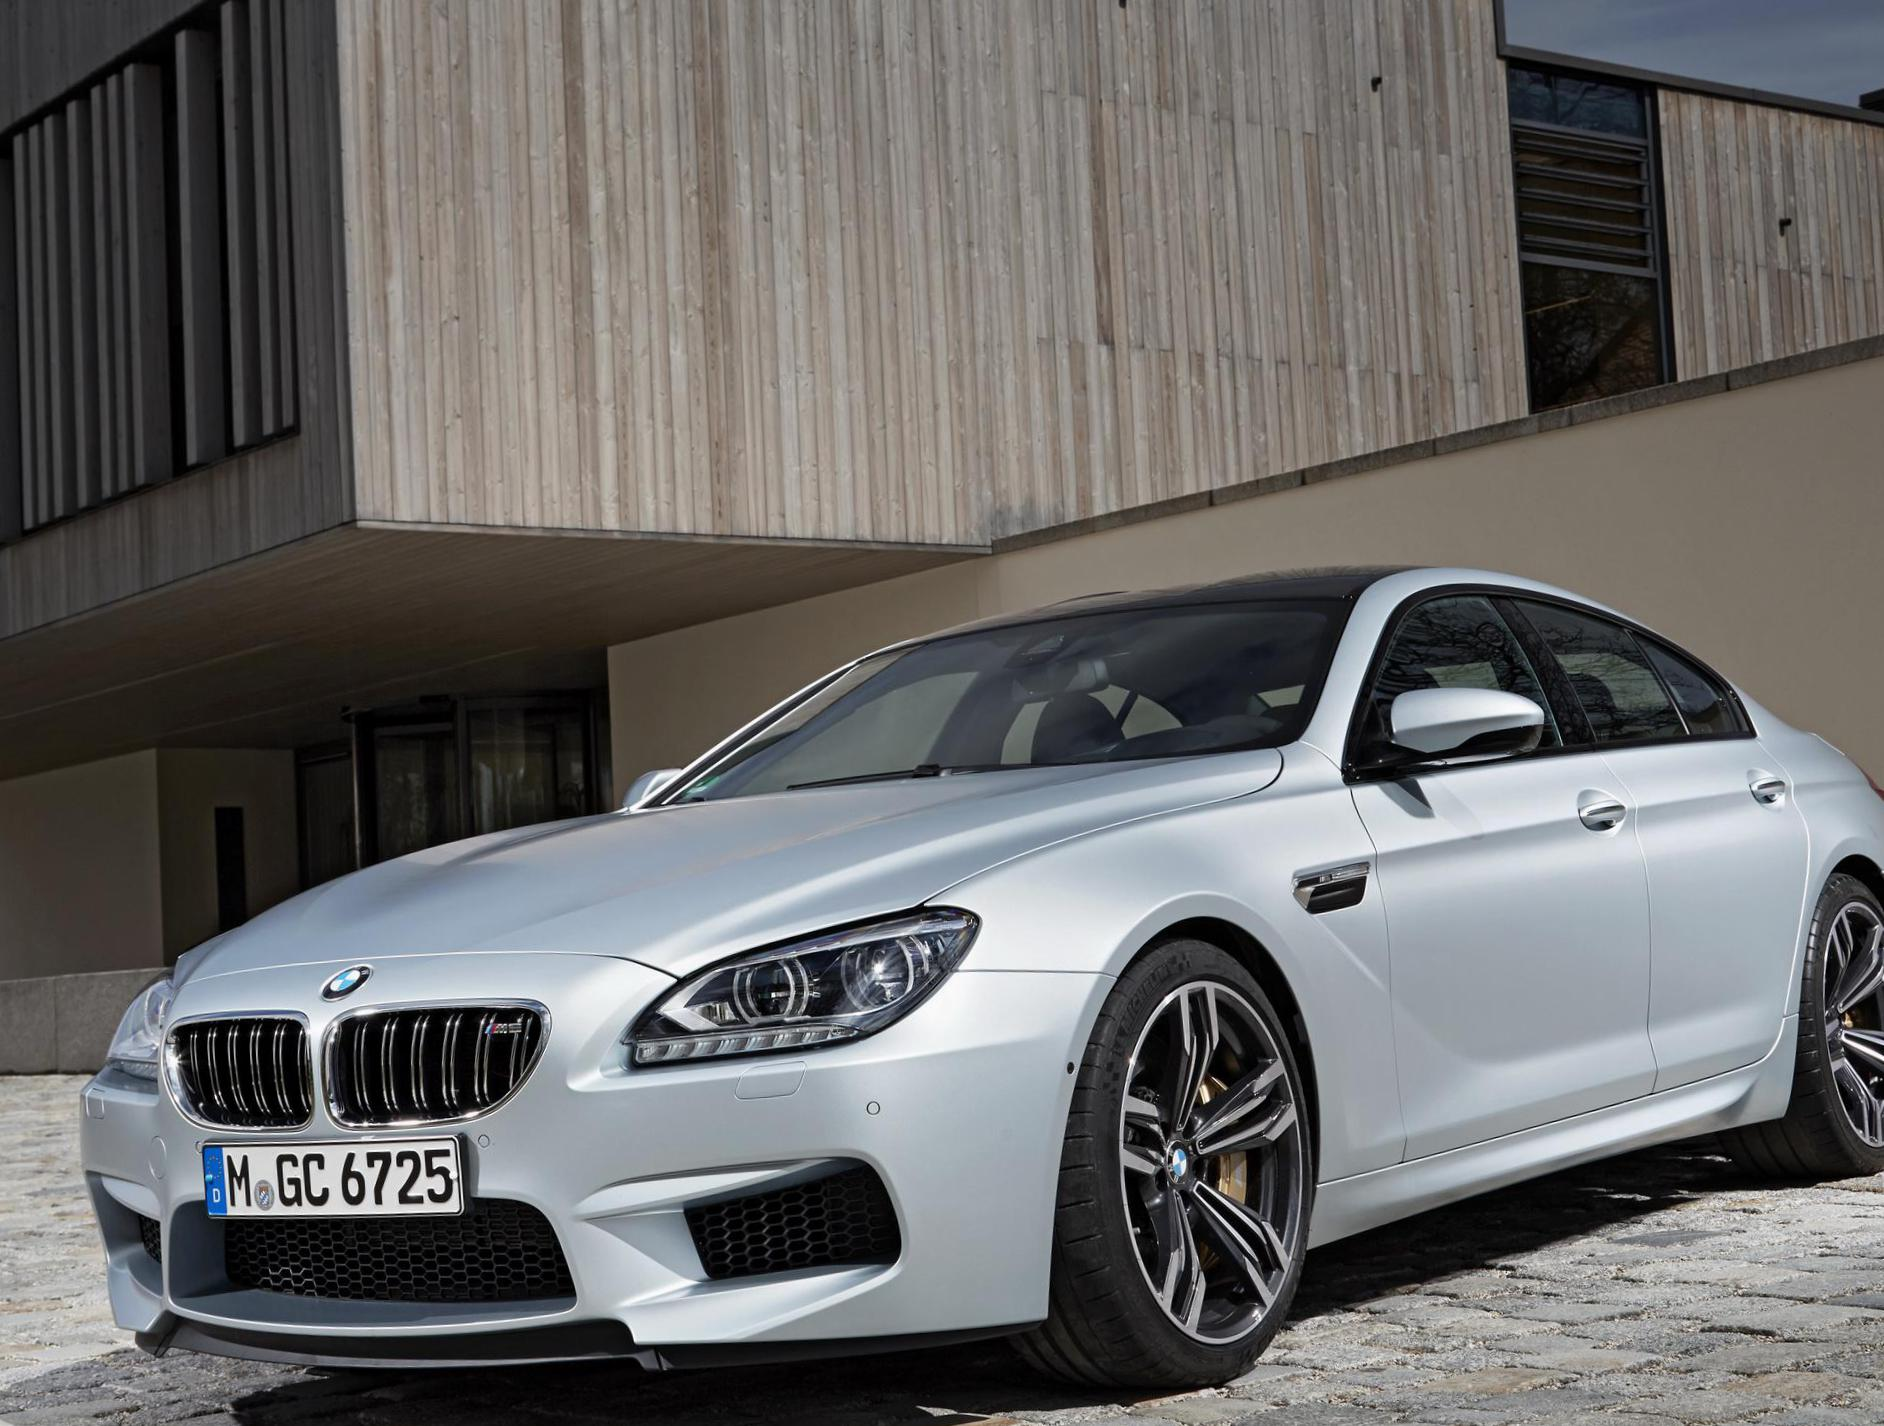 BMW M6 Gran Coupe (F06) spec 2009